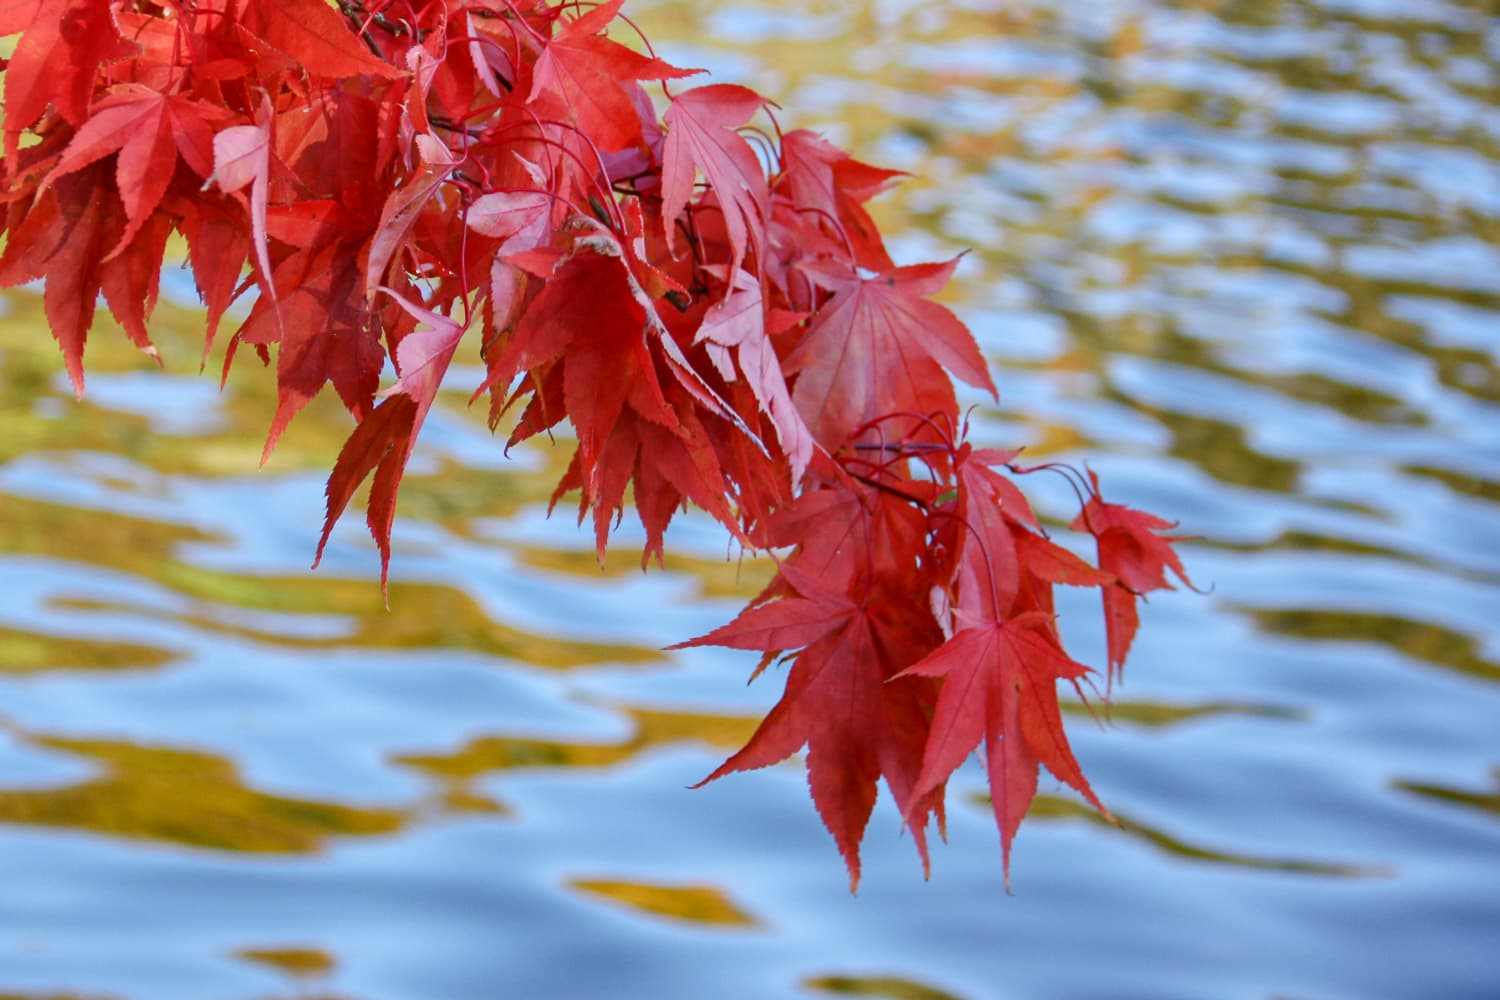 Red autumn maple leaves with water ripples behind